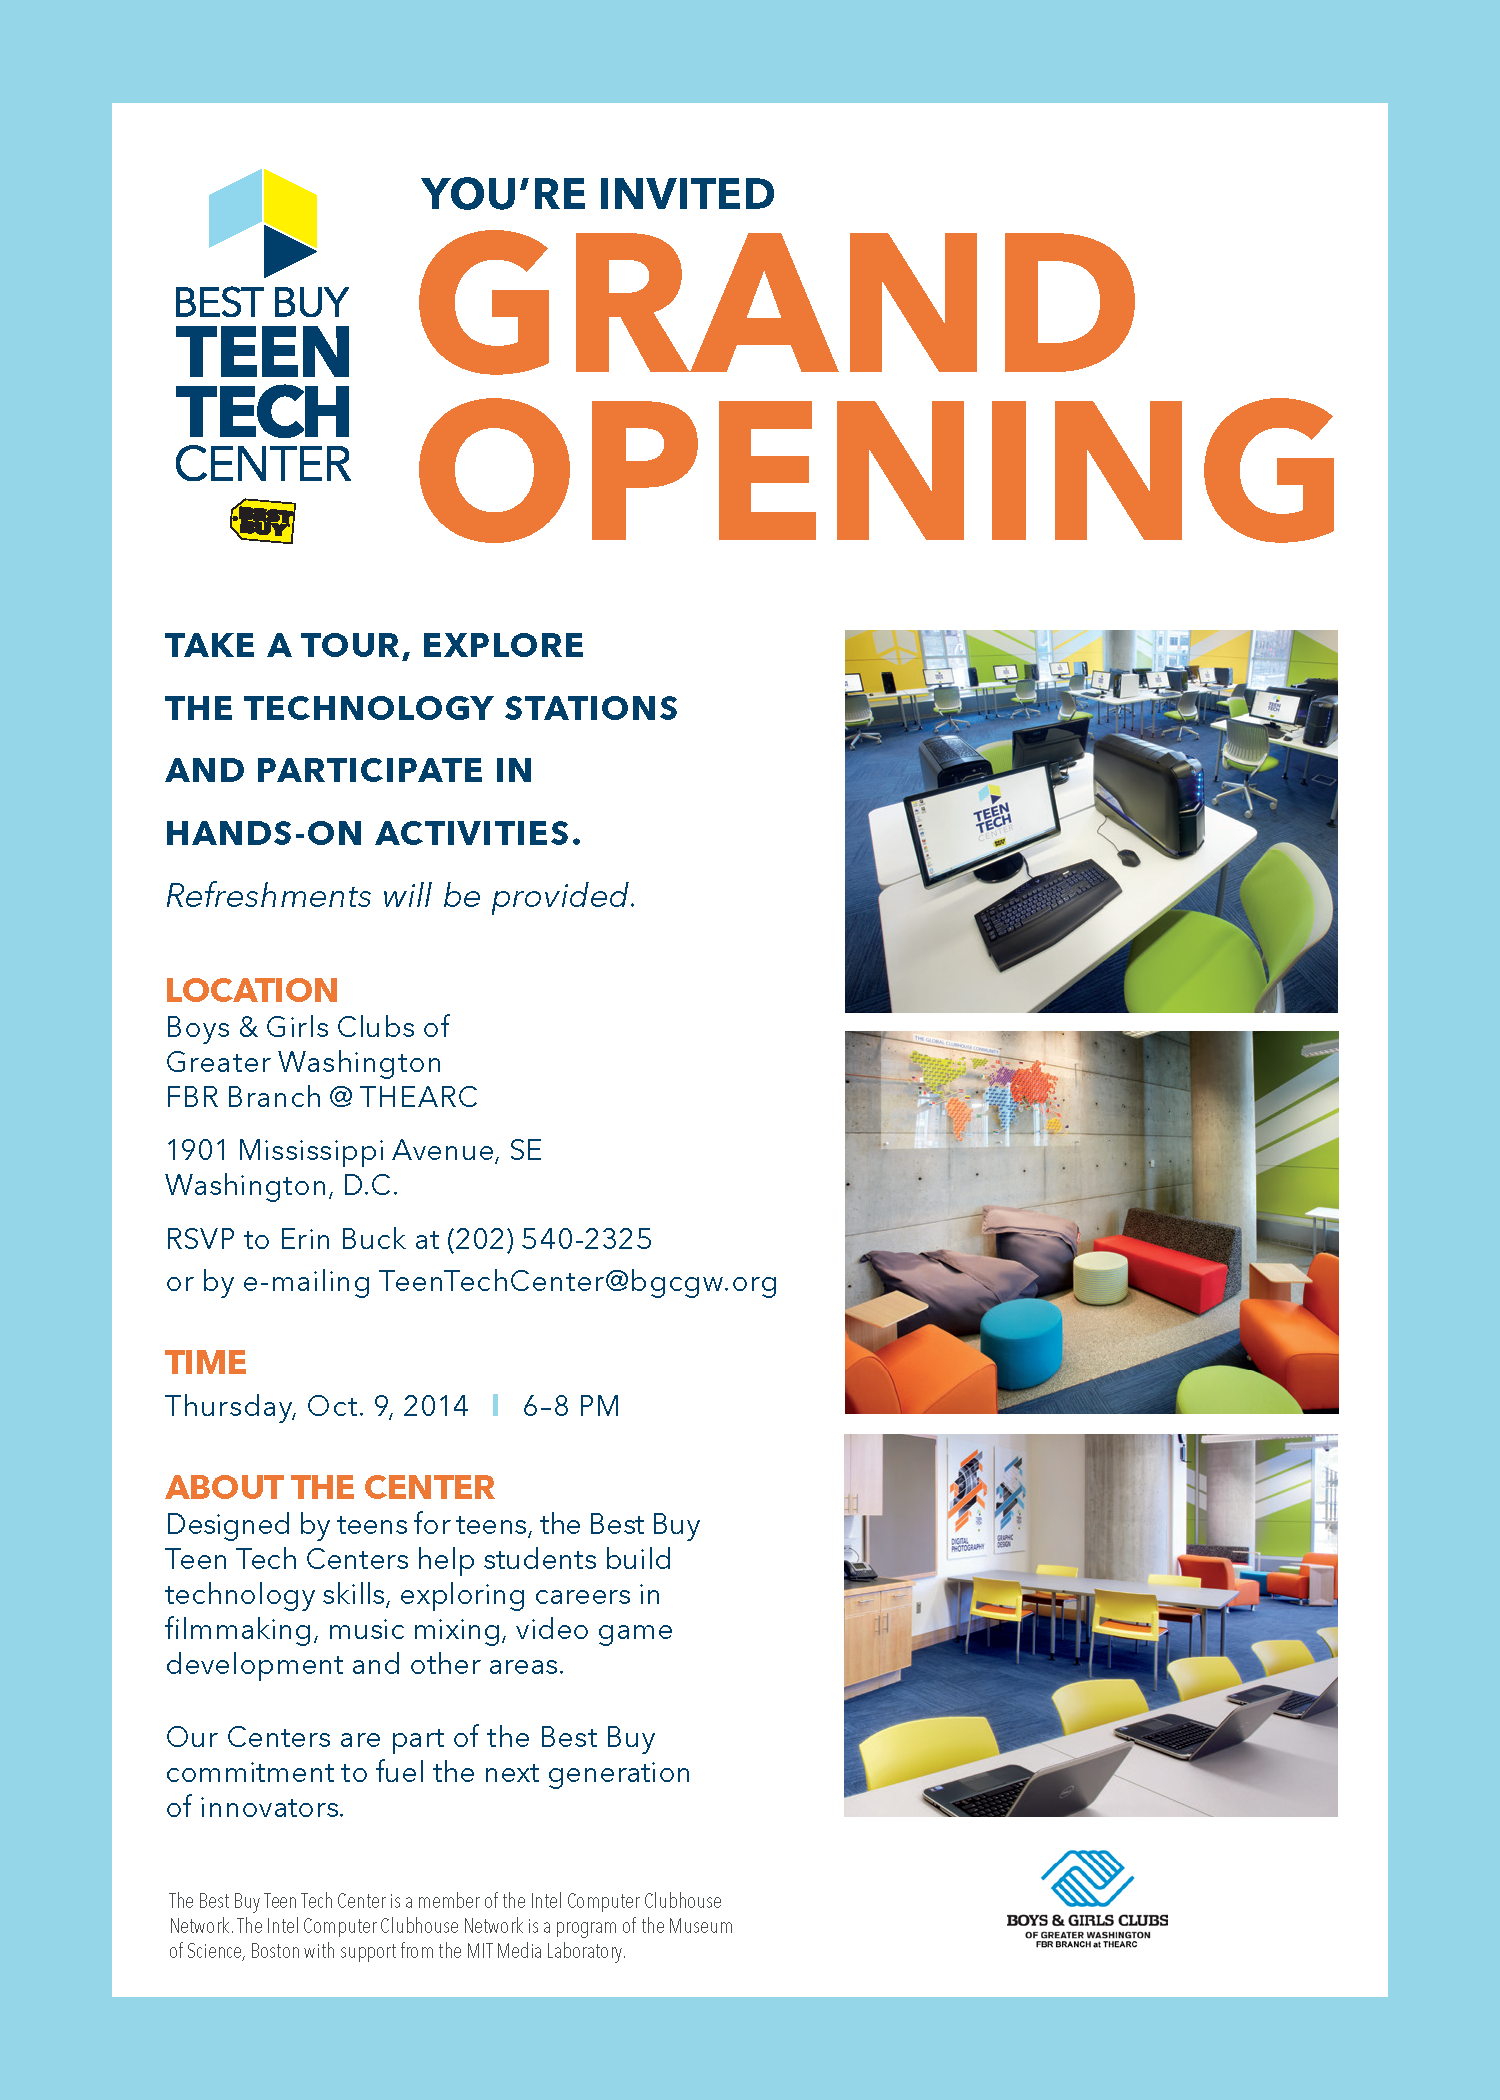 Select here for more details: Teen Tech Center GRAND OPENING!